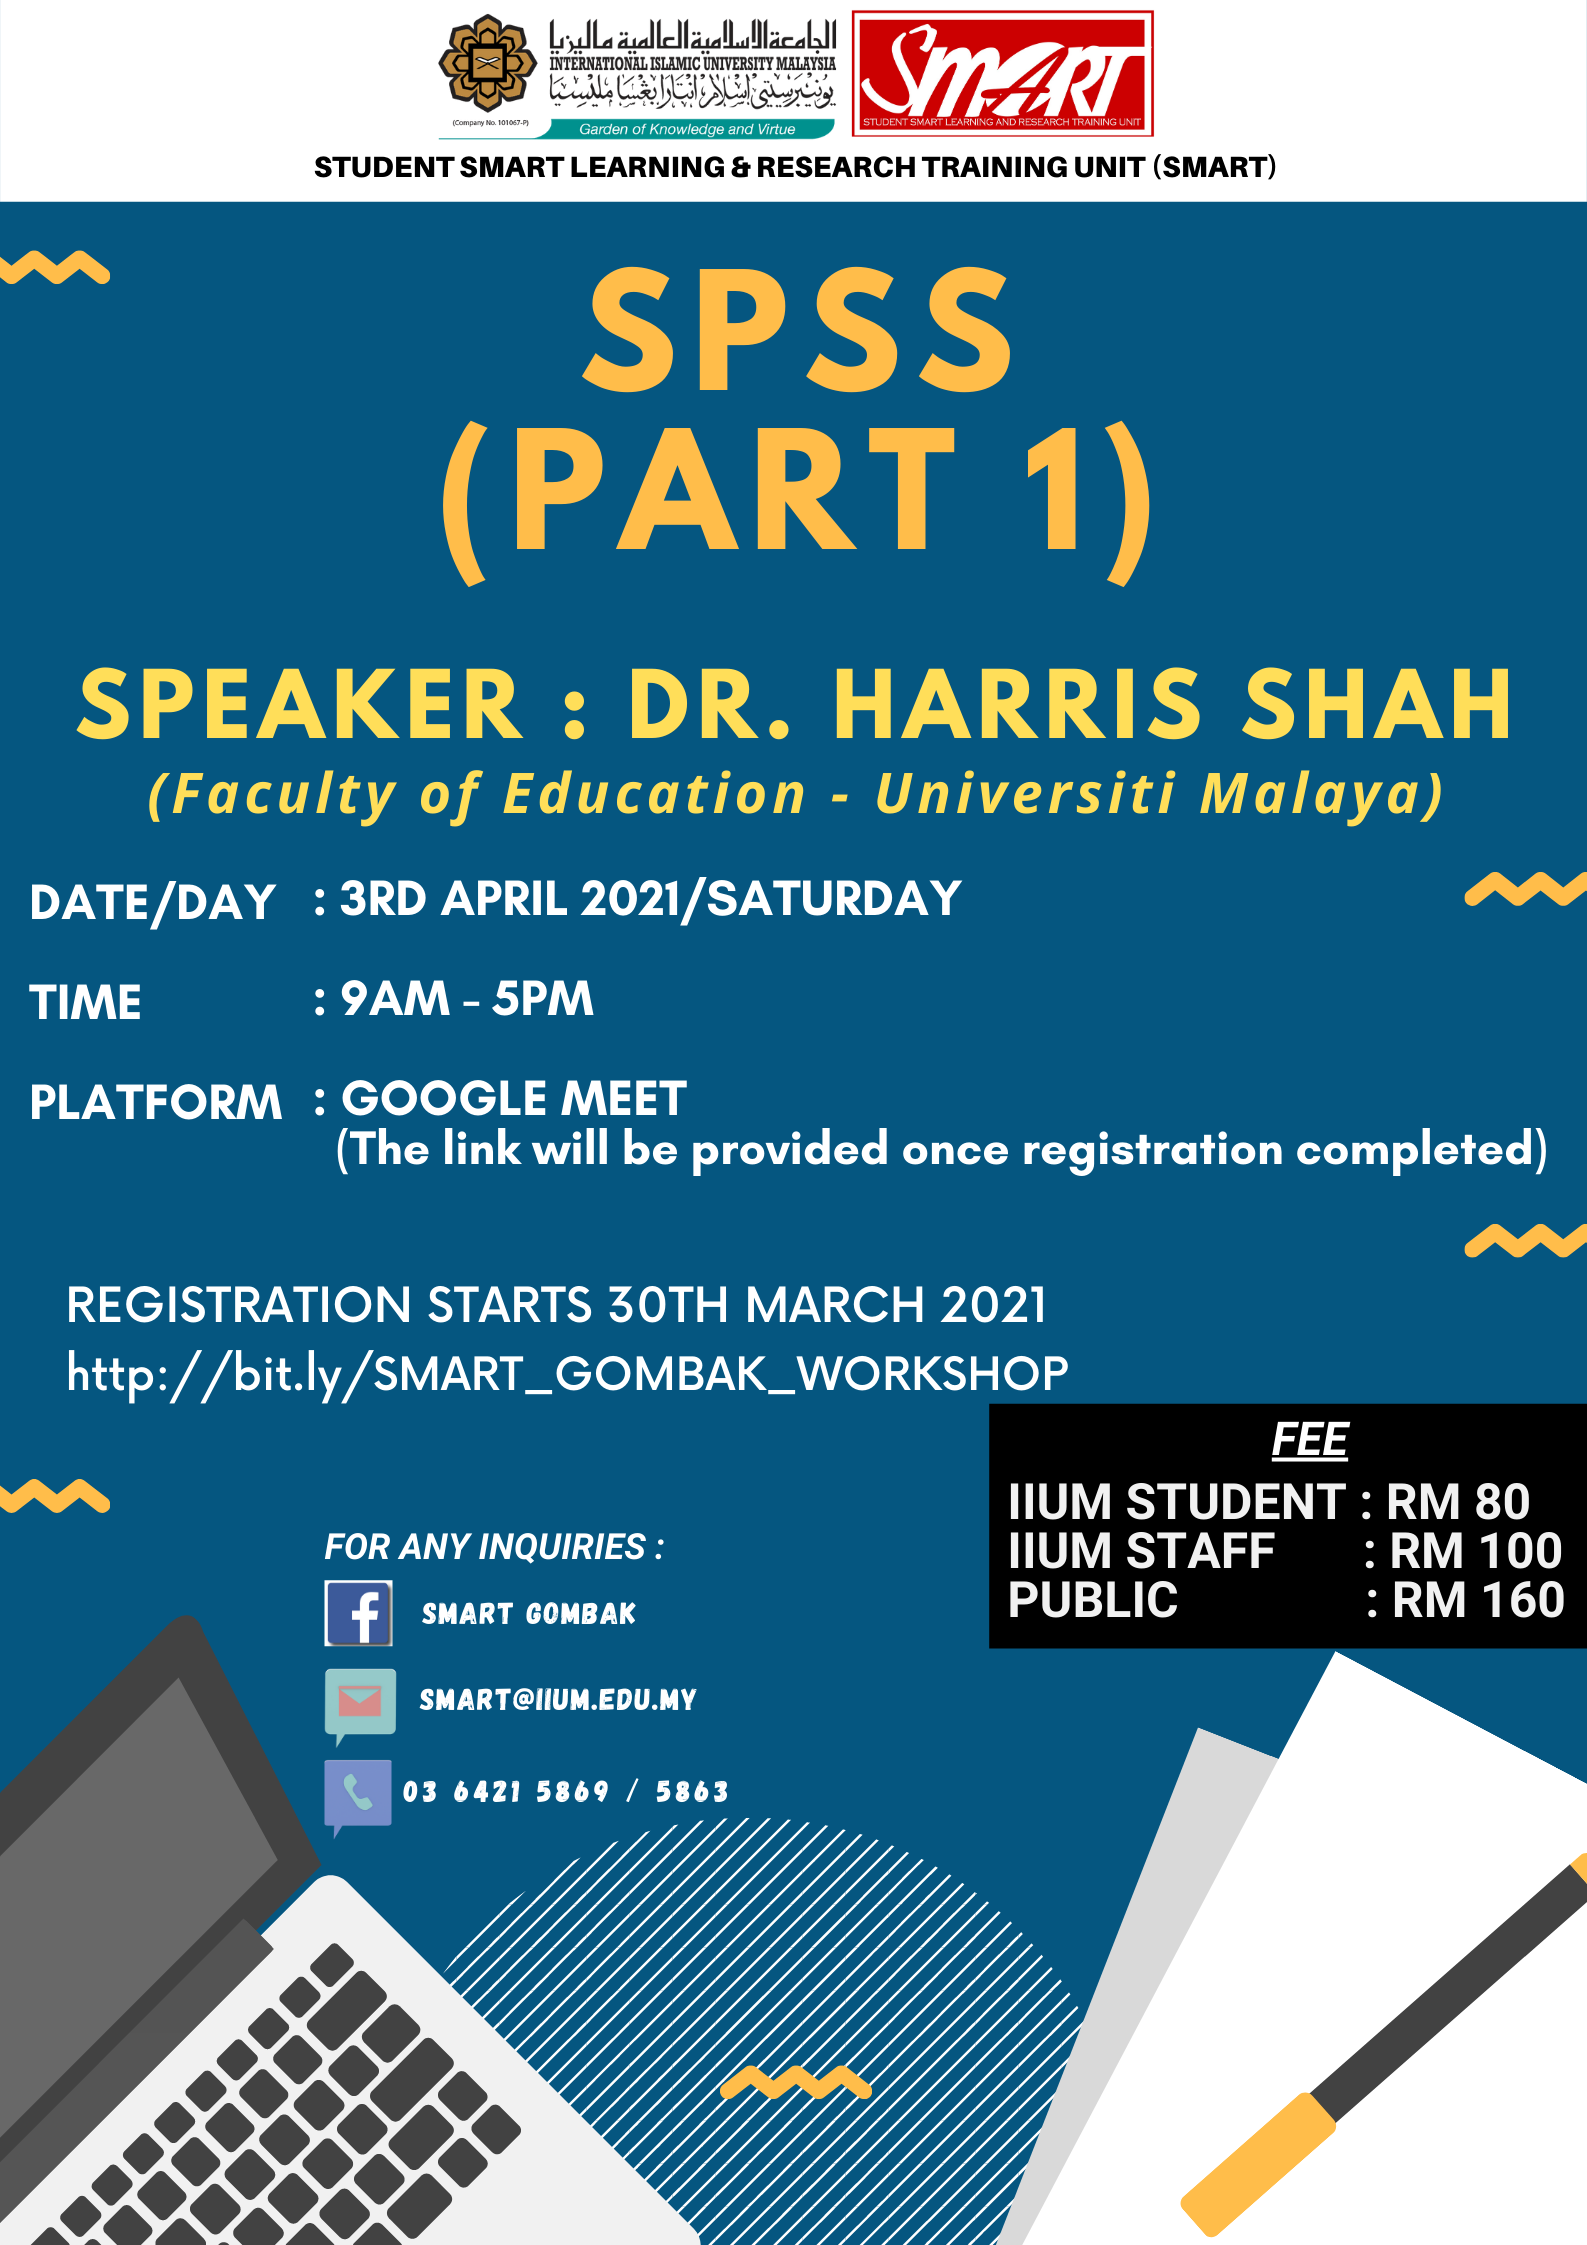 WORKSHOP : SPSS (PART 1)